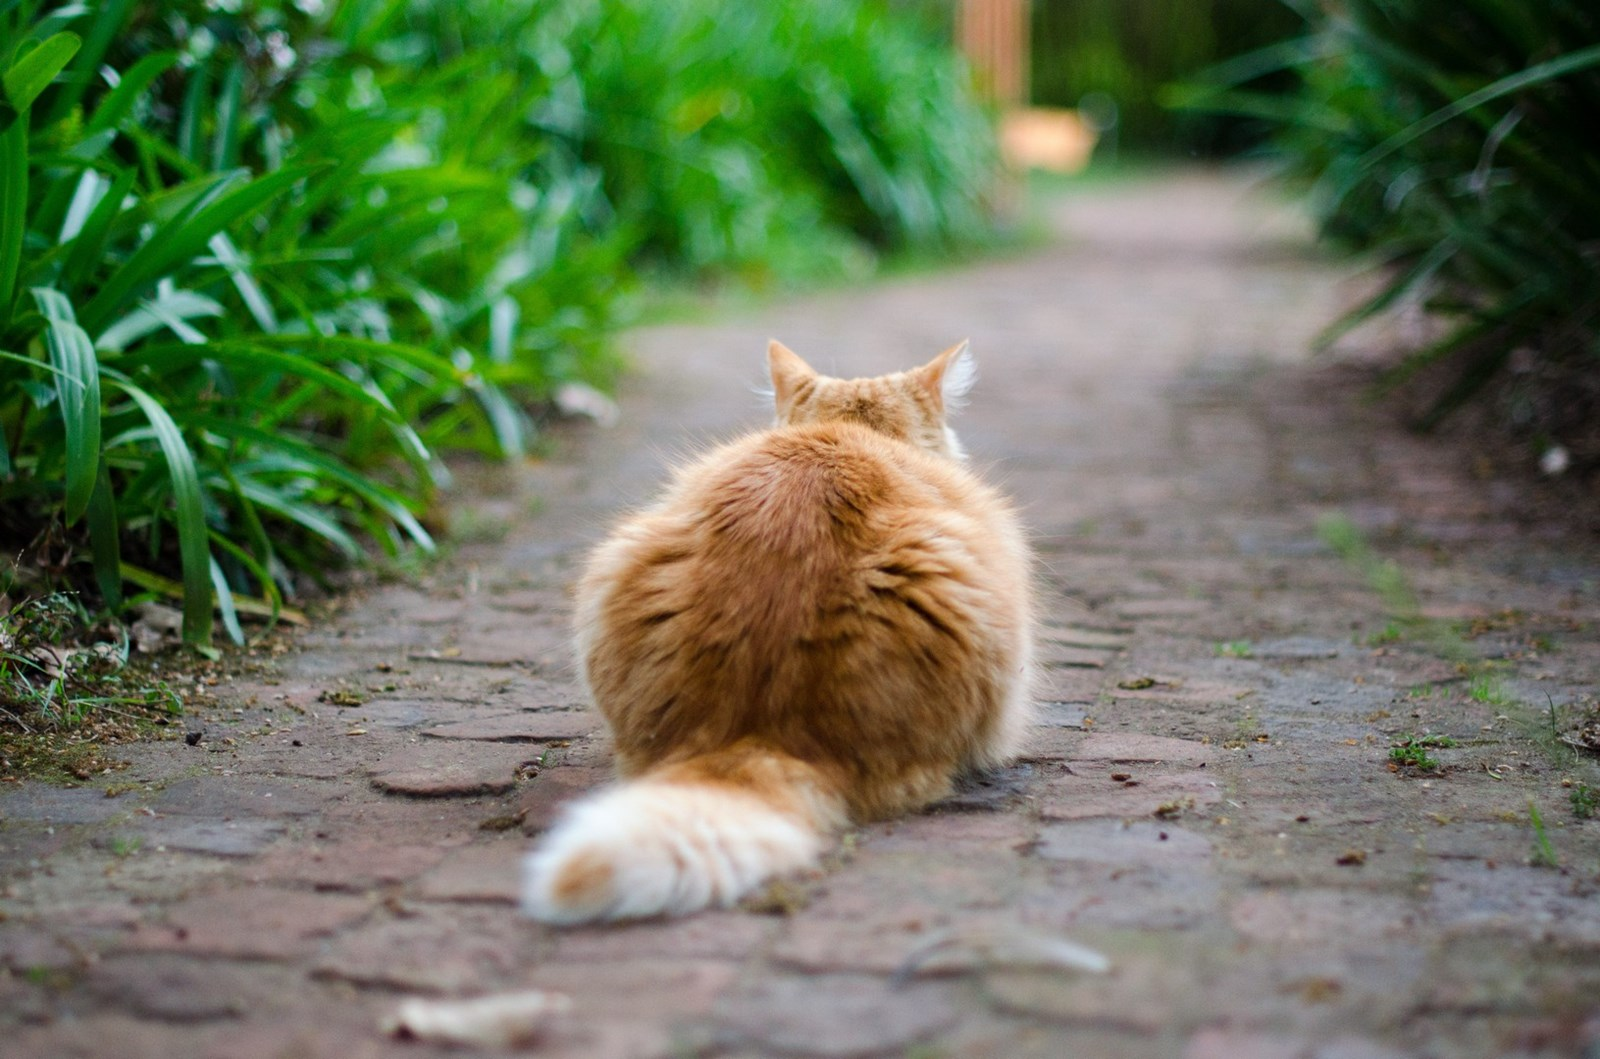 Ginger cat sitting on a brick path